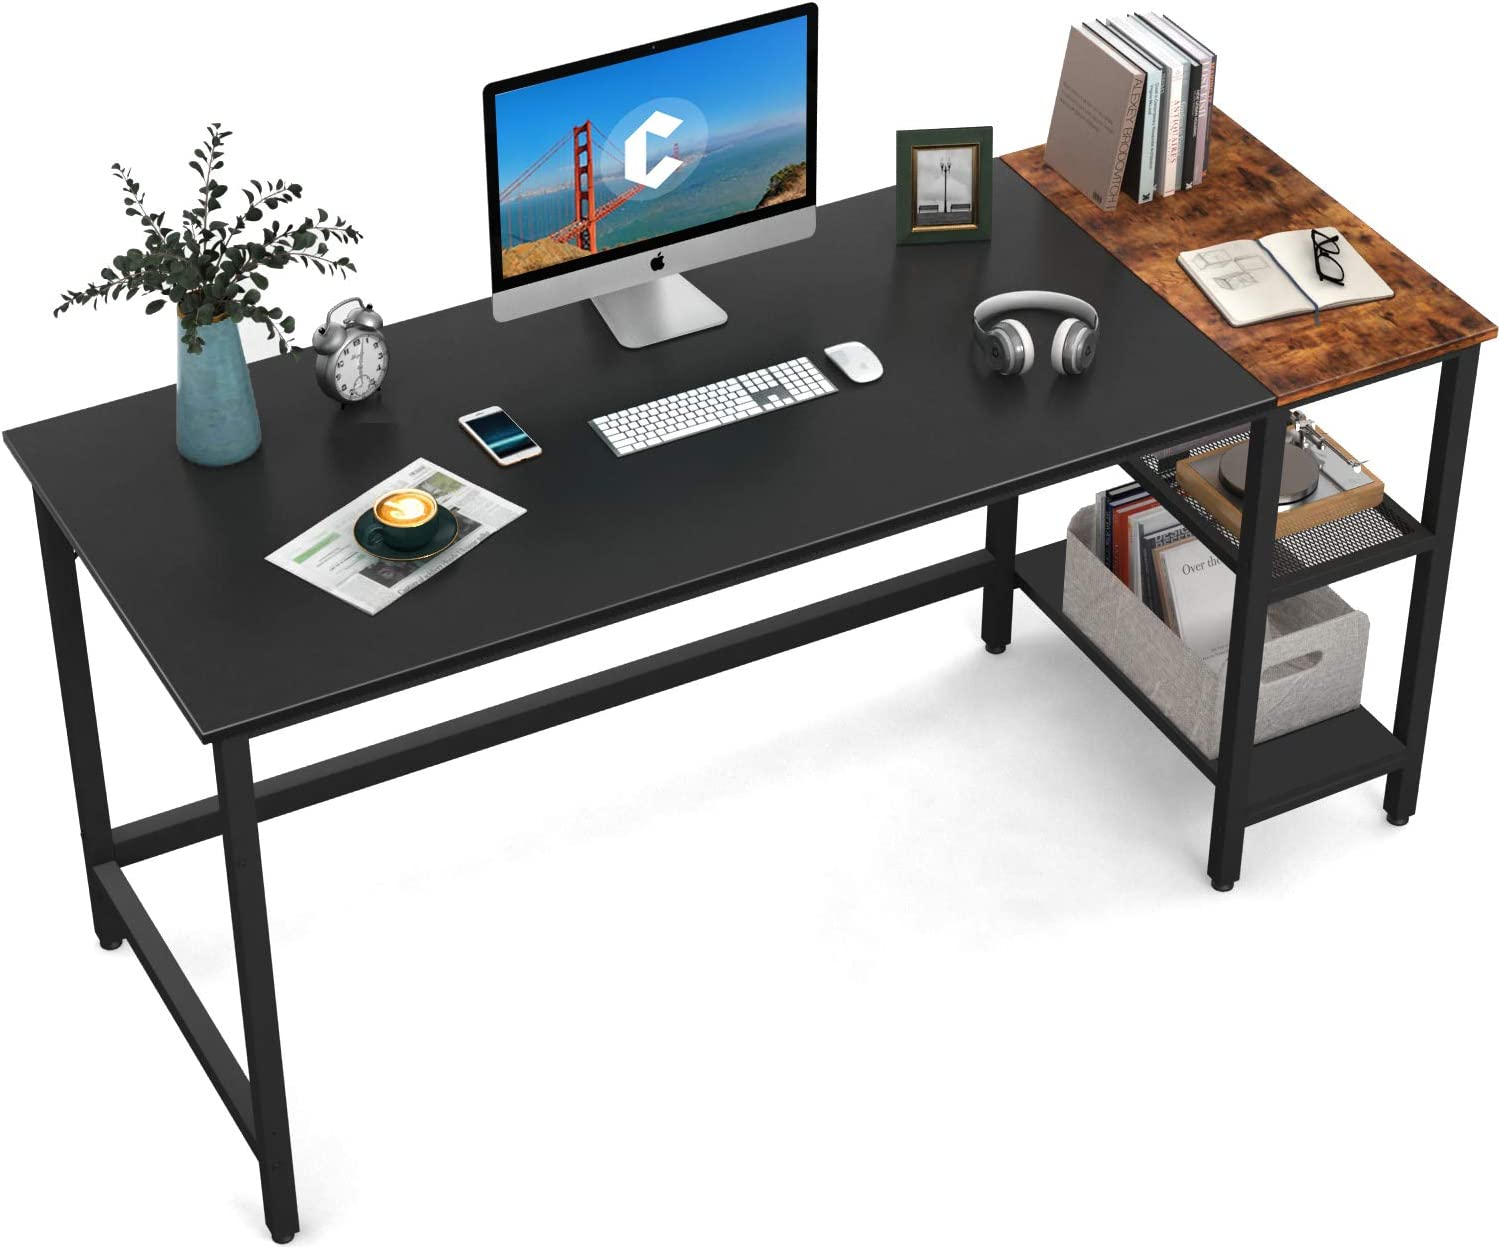 CubiCubi Home Office Computer Desk, 55 Inch Study Writing Table with Storage Shelves, Modern Simple Style PC Desk with Splice Board, Black and Rustic Brown